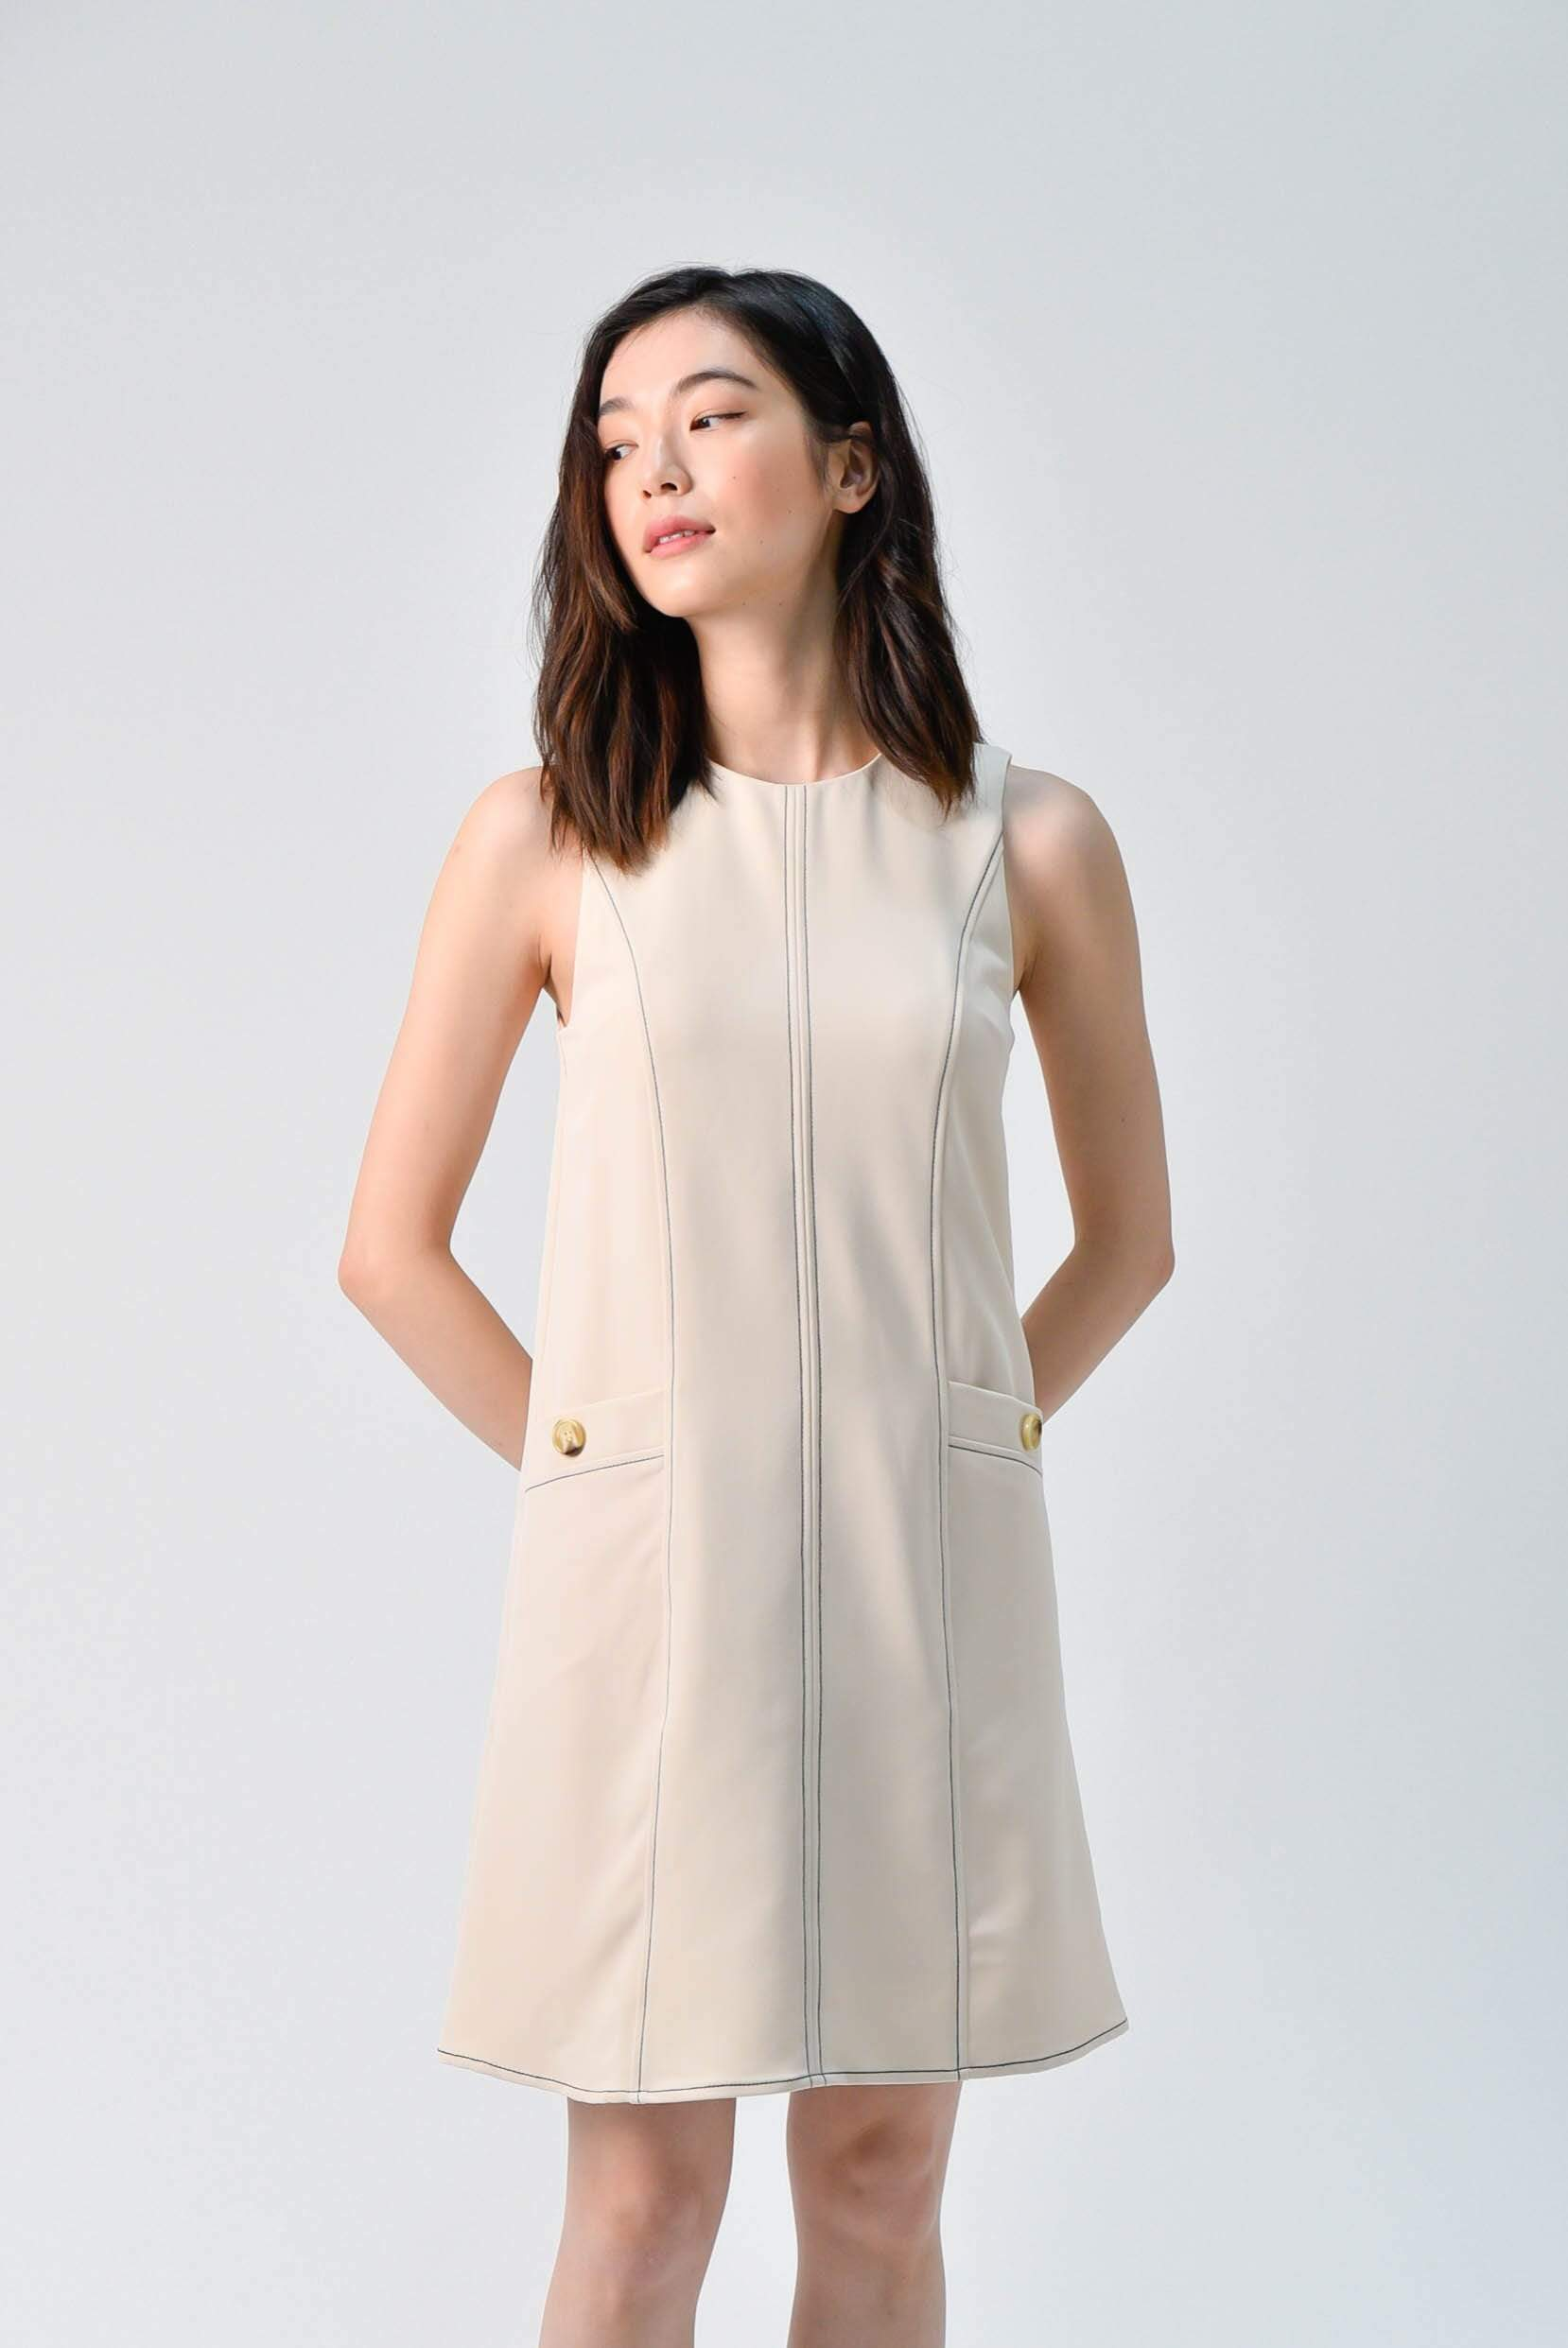 AWE Dresses STITCHED SHIFT DRESS IN BEIGE